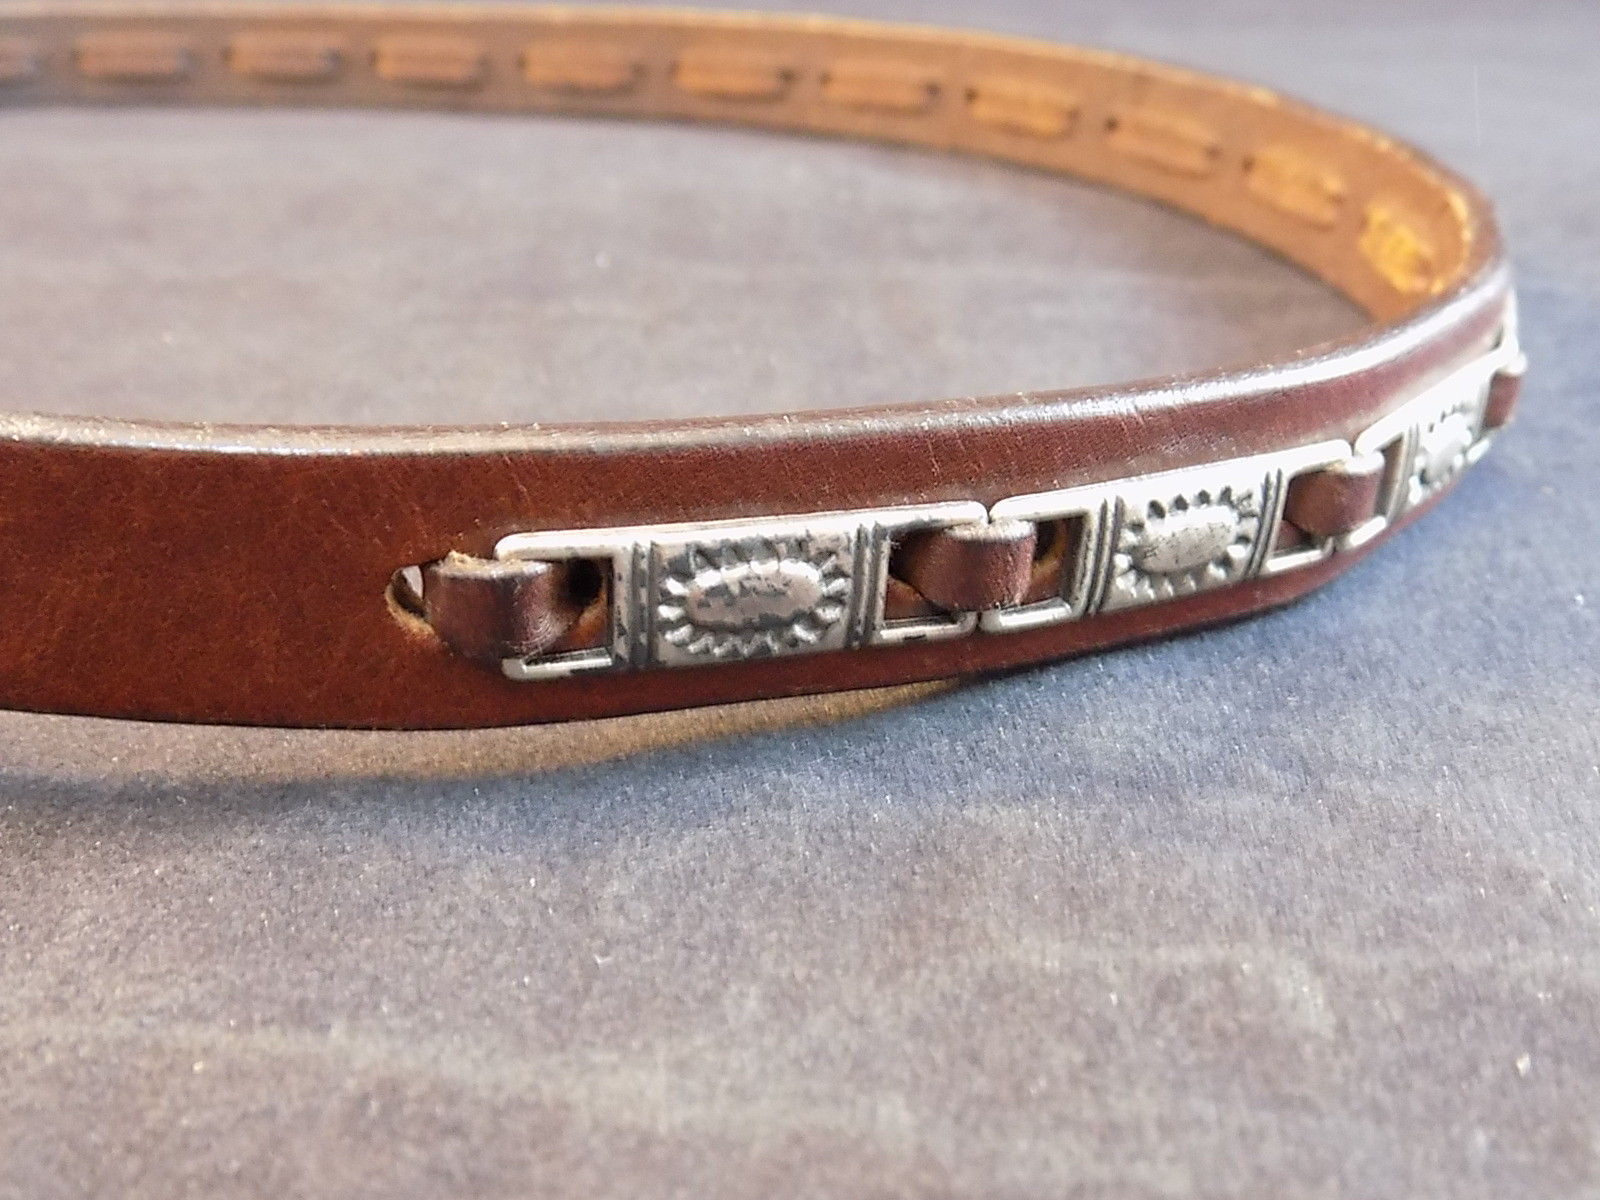 WOMEN'S FASHION BELT FOSSIL LEATHER BELT w/ Silver tone Accents and Buckle 36""